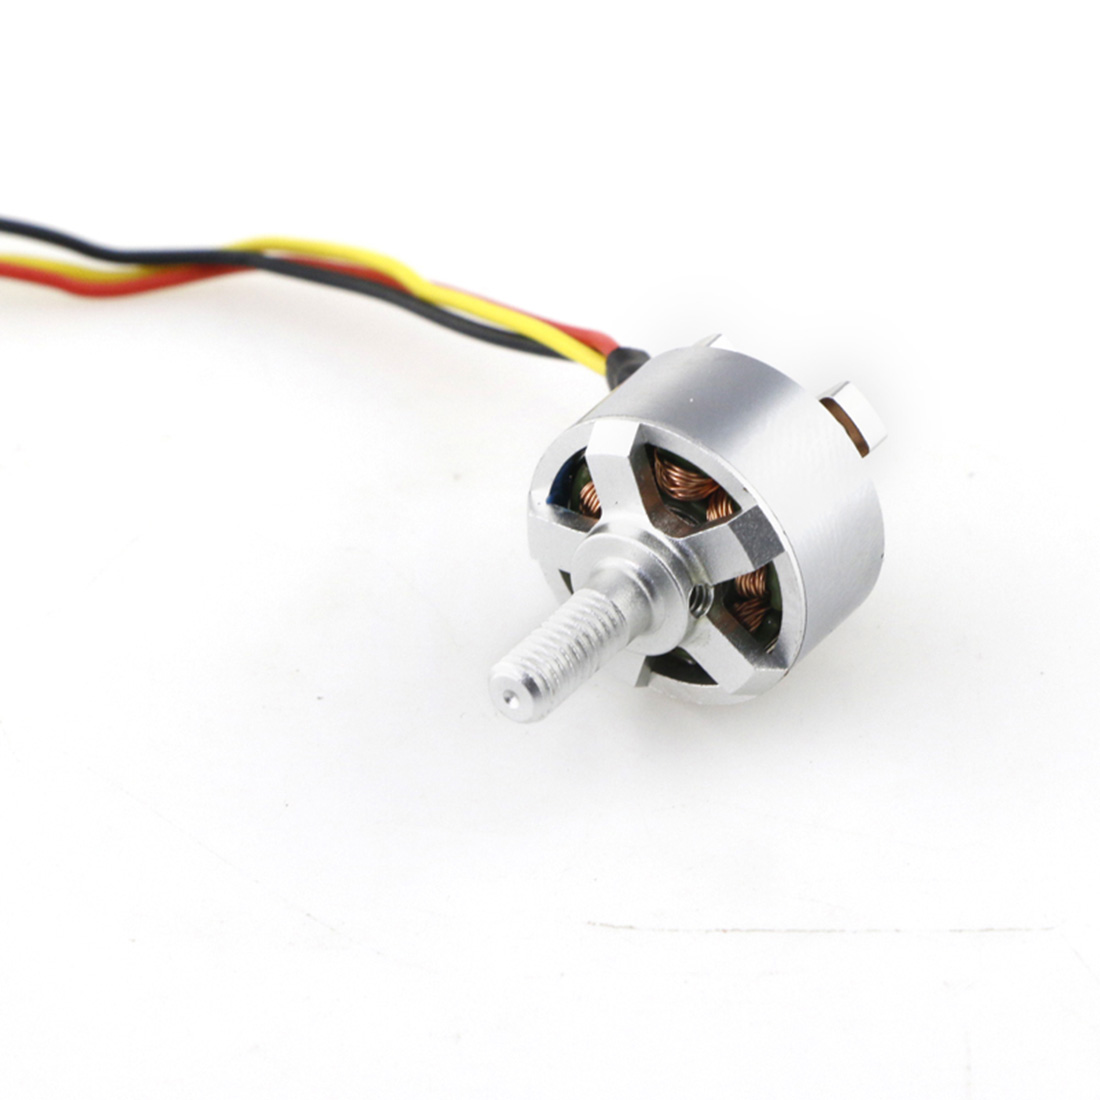 MJX Bugs 3 Mini 1306 2750KV Brushless Motor CW CCW for MJX B3 Racer Drone RC Helicopters Aircraft Spare Parts